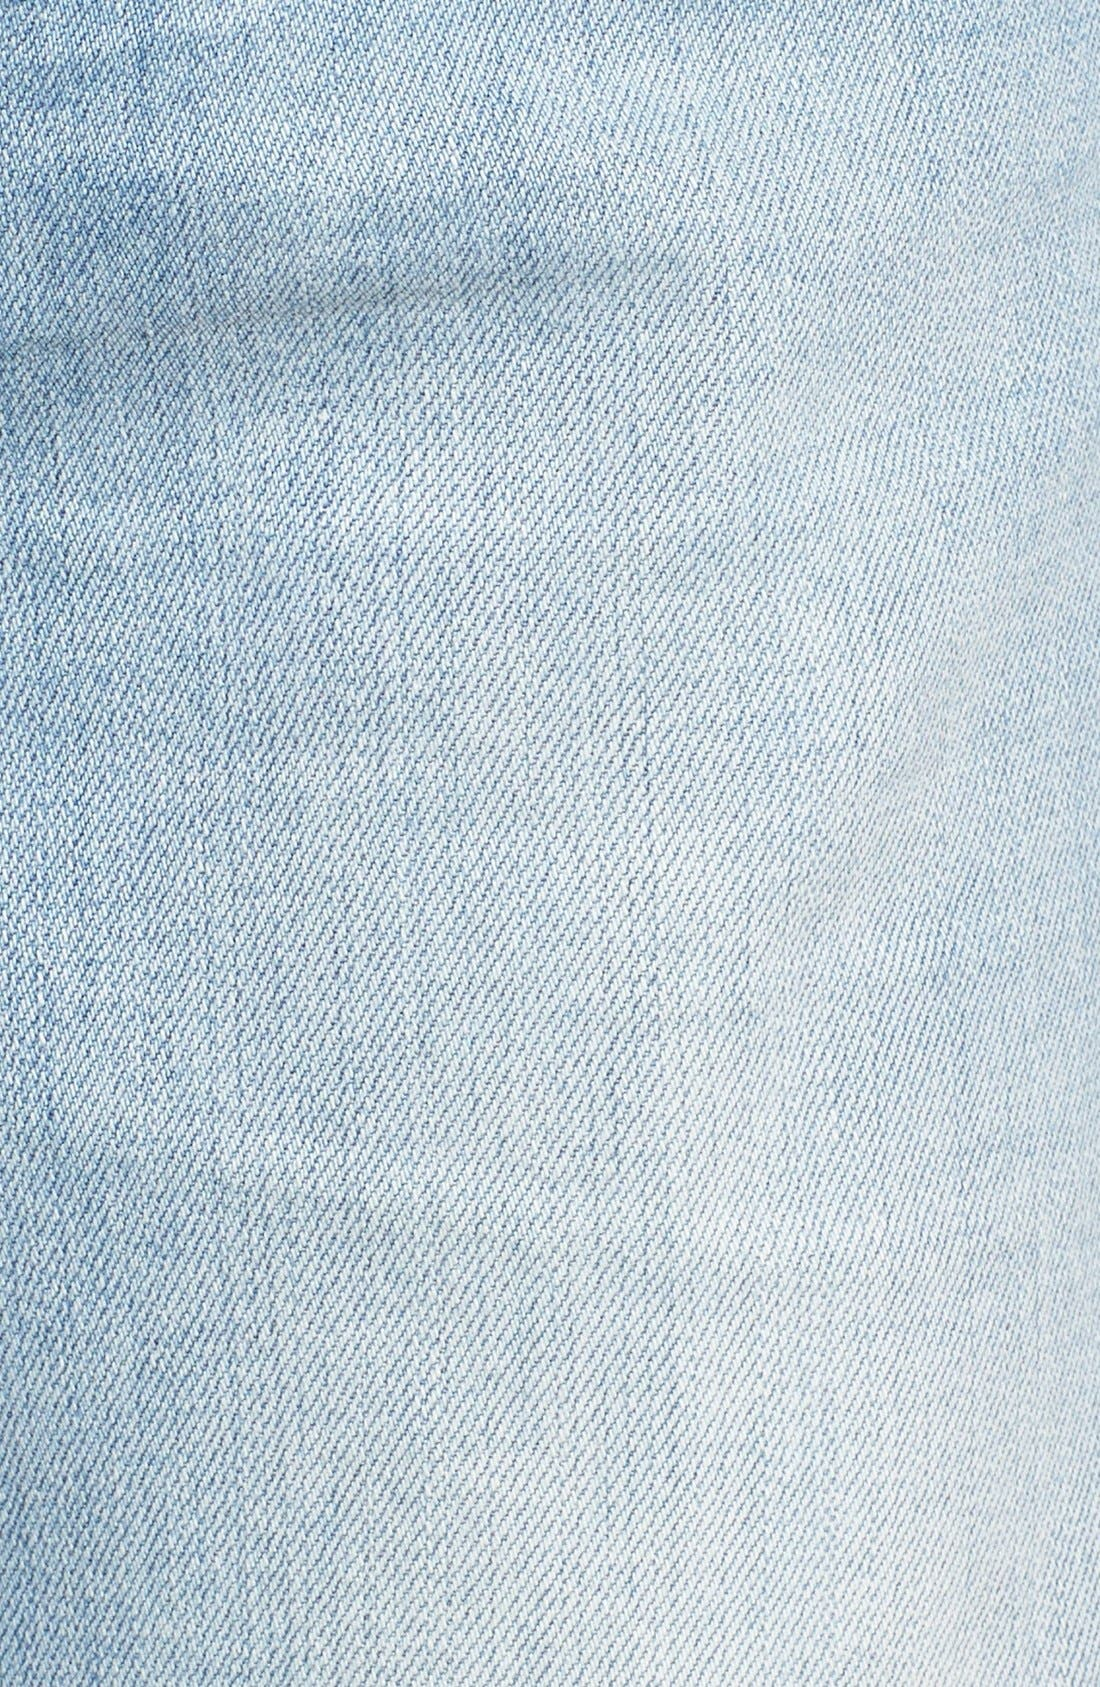 'Taylor' Distressed Jeans,                             Alternate thumbnail 4, color,                             404